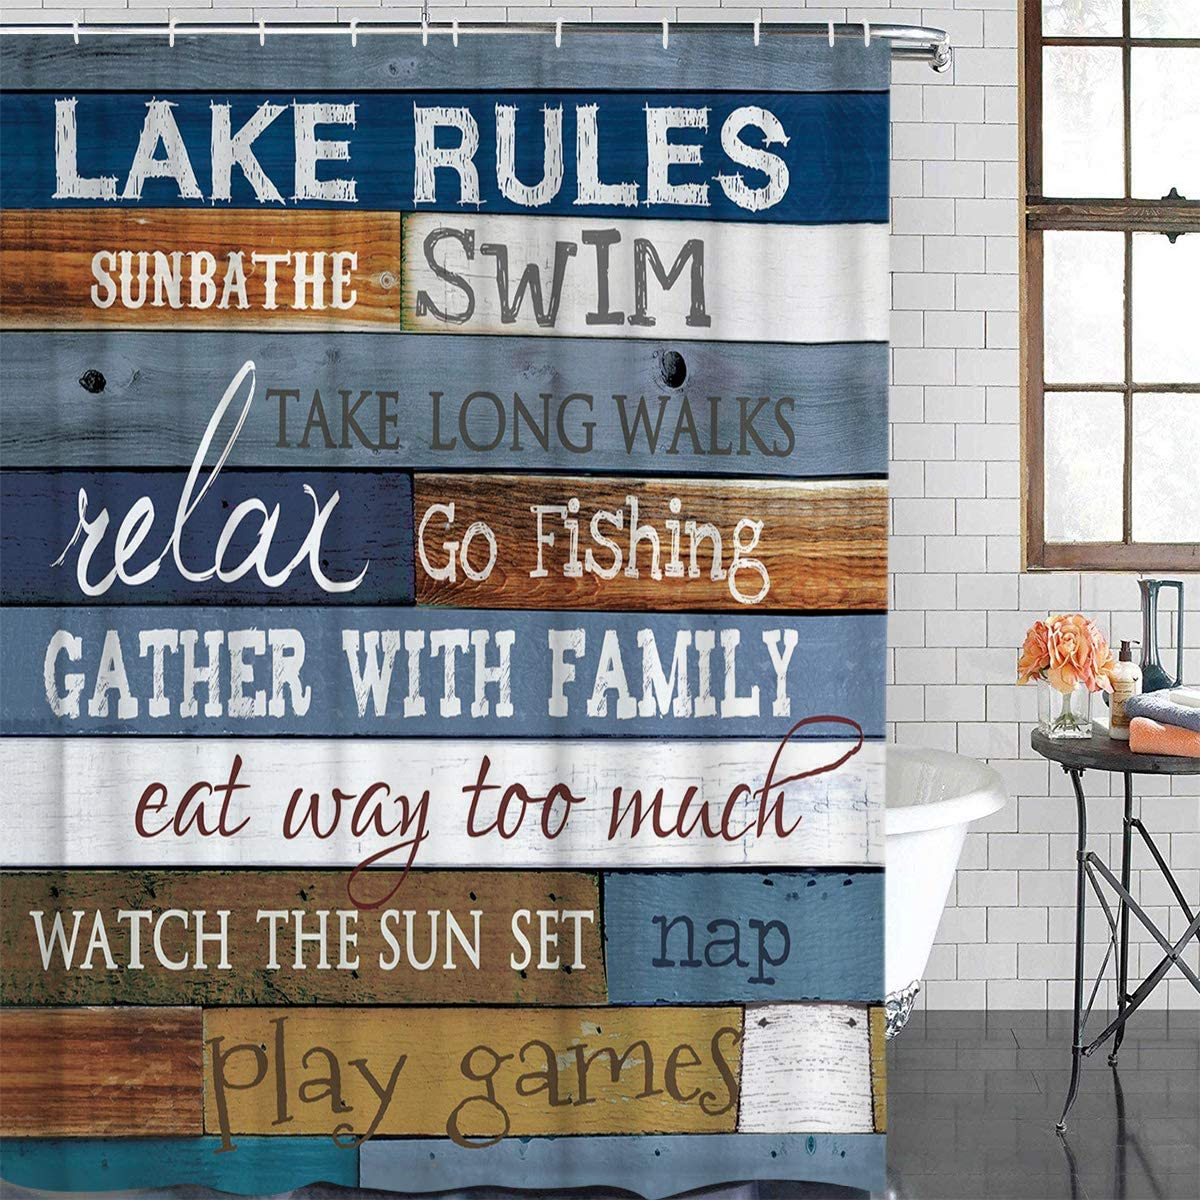 Shower Curtain Sets, Vintage Wooden Lake Rules Durable Waterproof Polyester Fabric Bath Curtain Set with Hooks for Home Bathroom Tub Decor Wood Plank Characters 60×72in